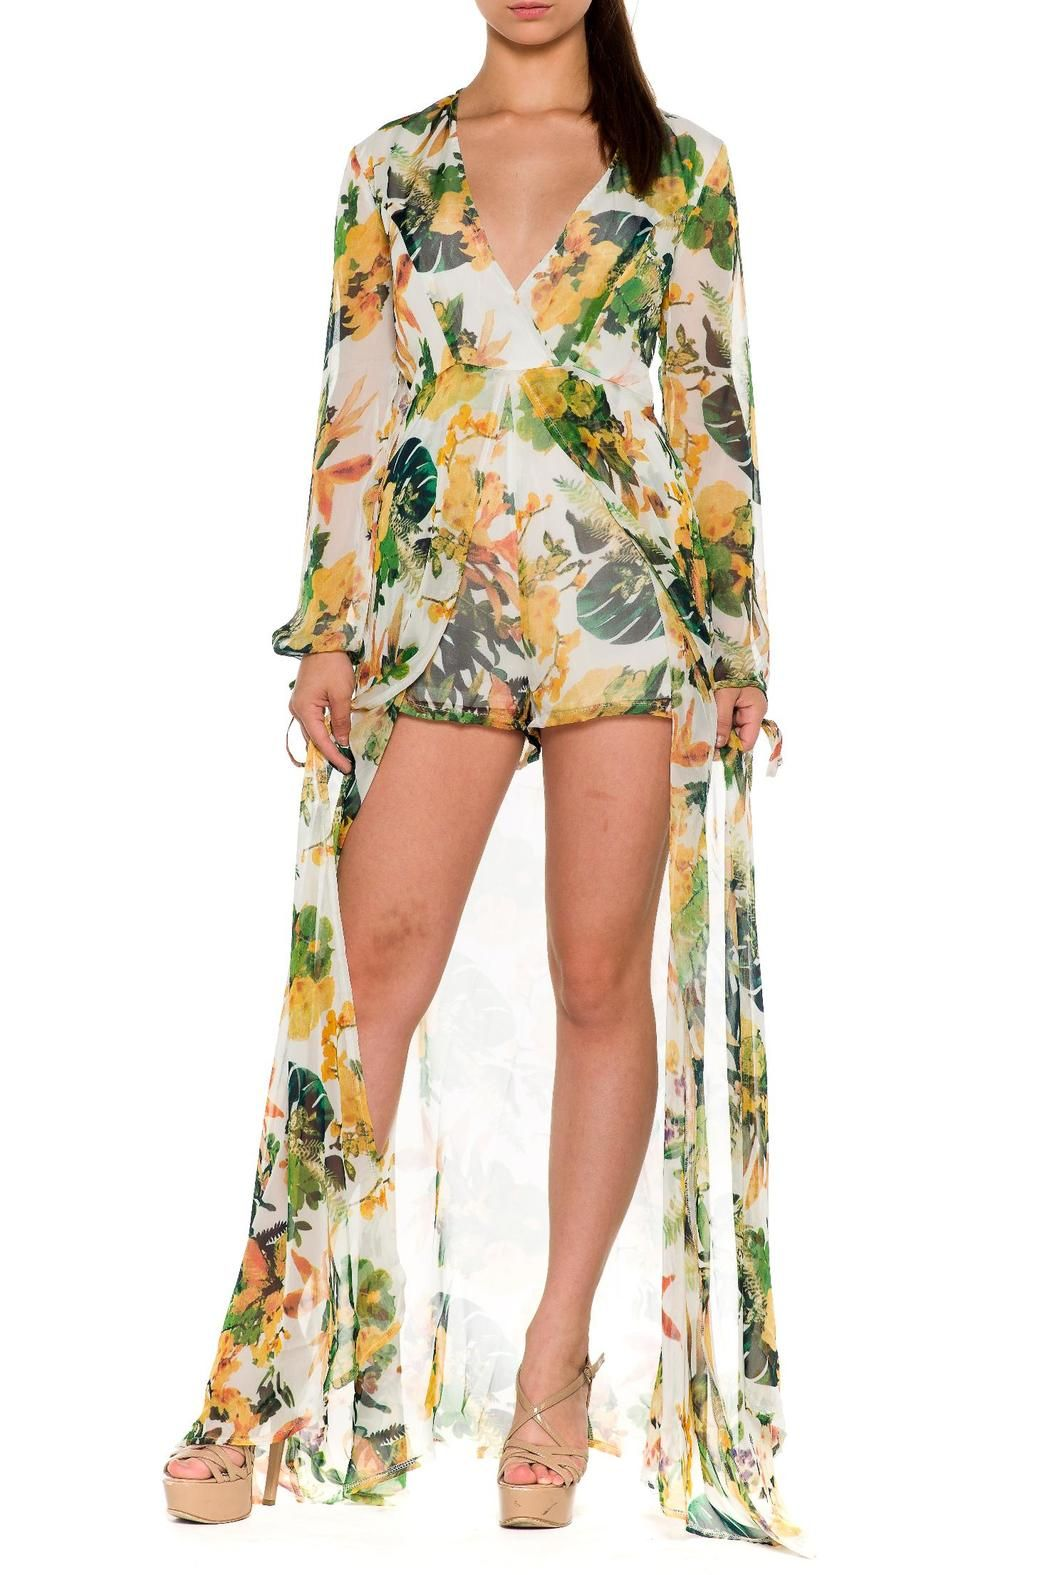 ff4f522d8dd0c Going maxi with a romper? Floral print chiffon, this long tail overlay  romper has sheer long sleeves tied on edges. V-neck style sheer maxi skirt  overlay ...